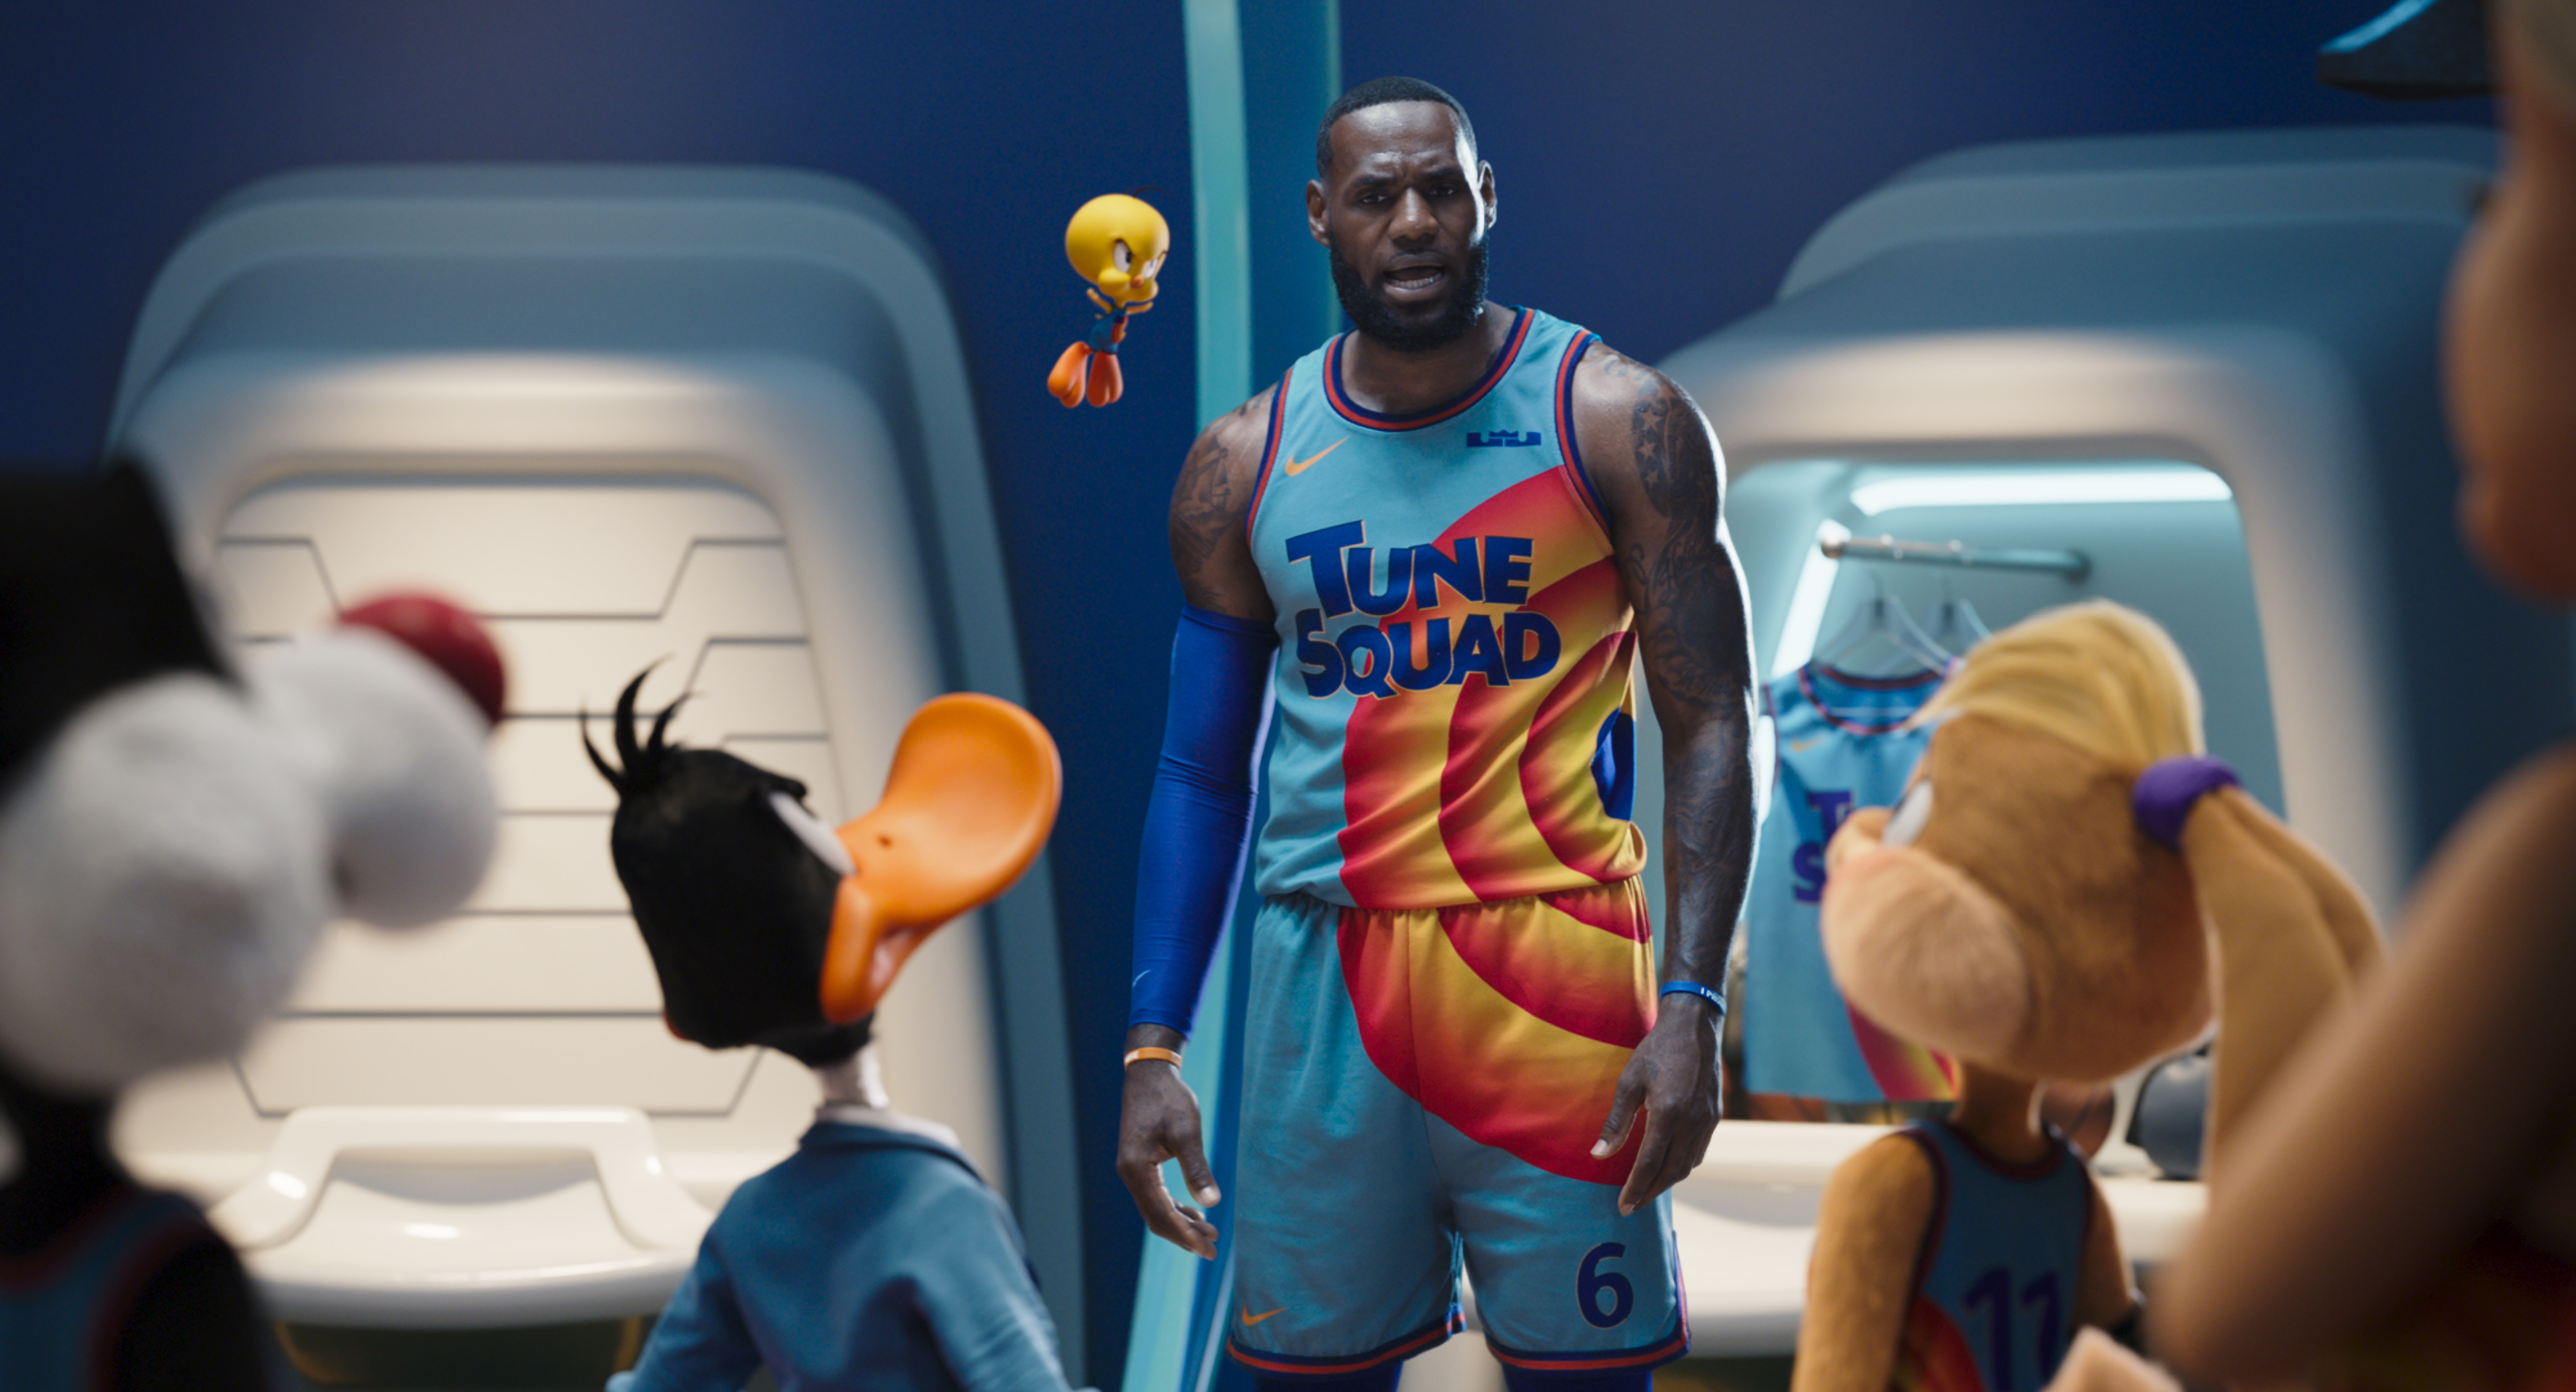 NBA star LeBron James is surrounded by Looney Tunes characters.